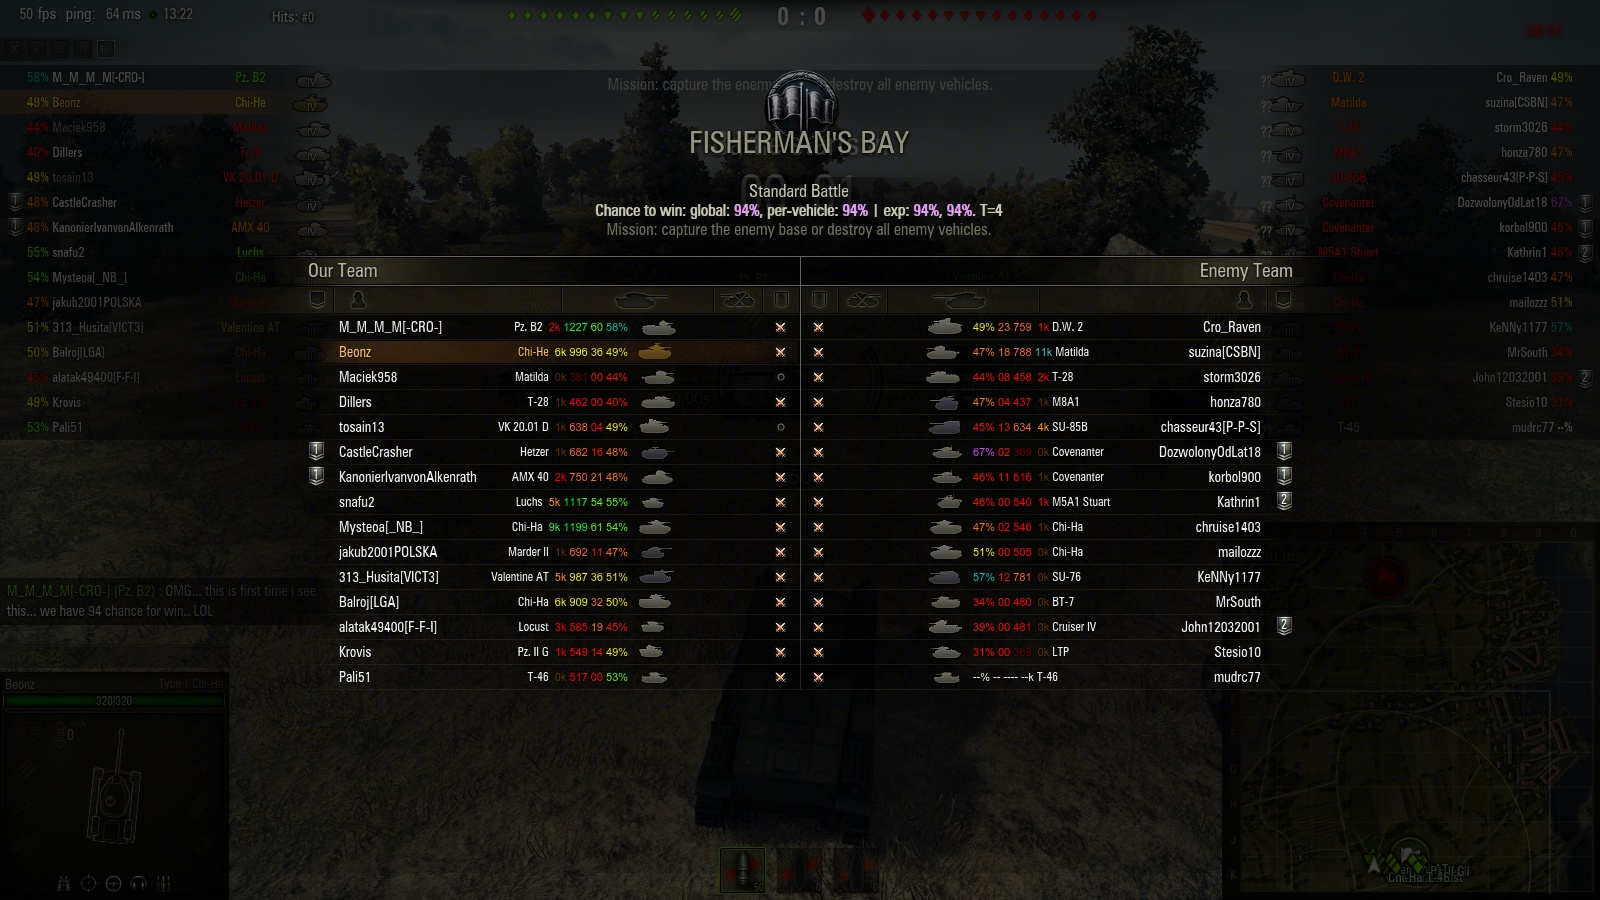 wot mod for showing player stats